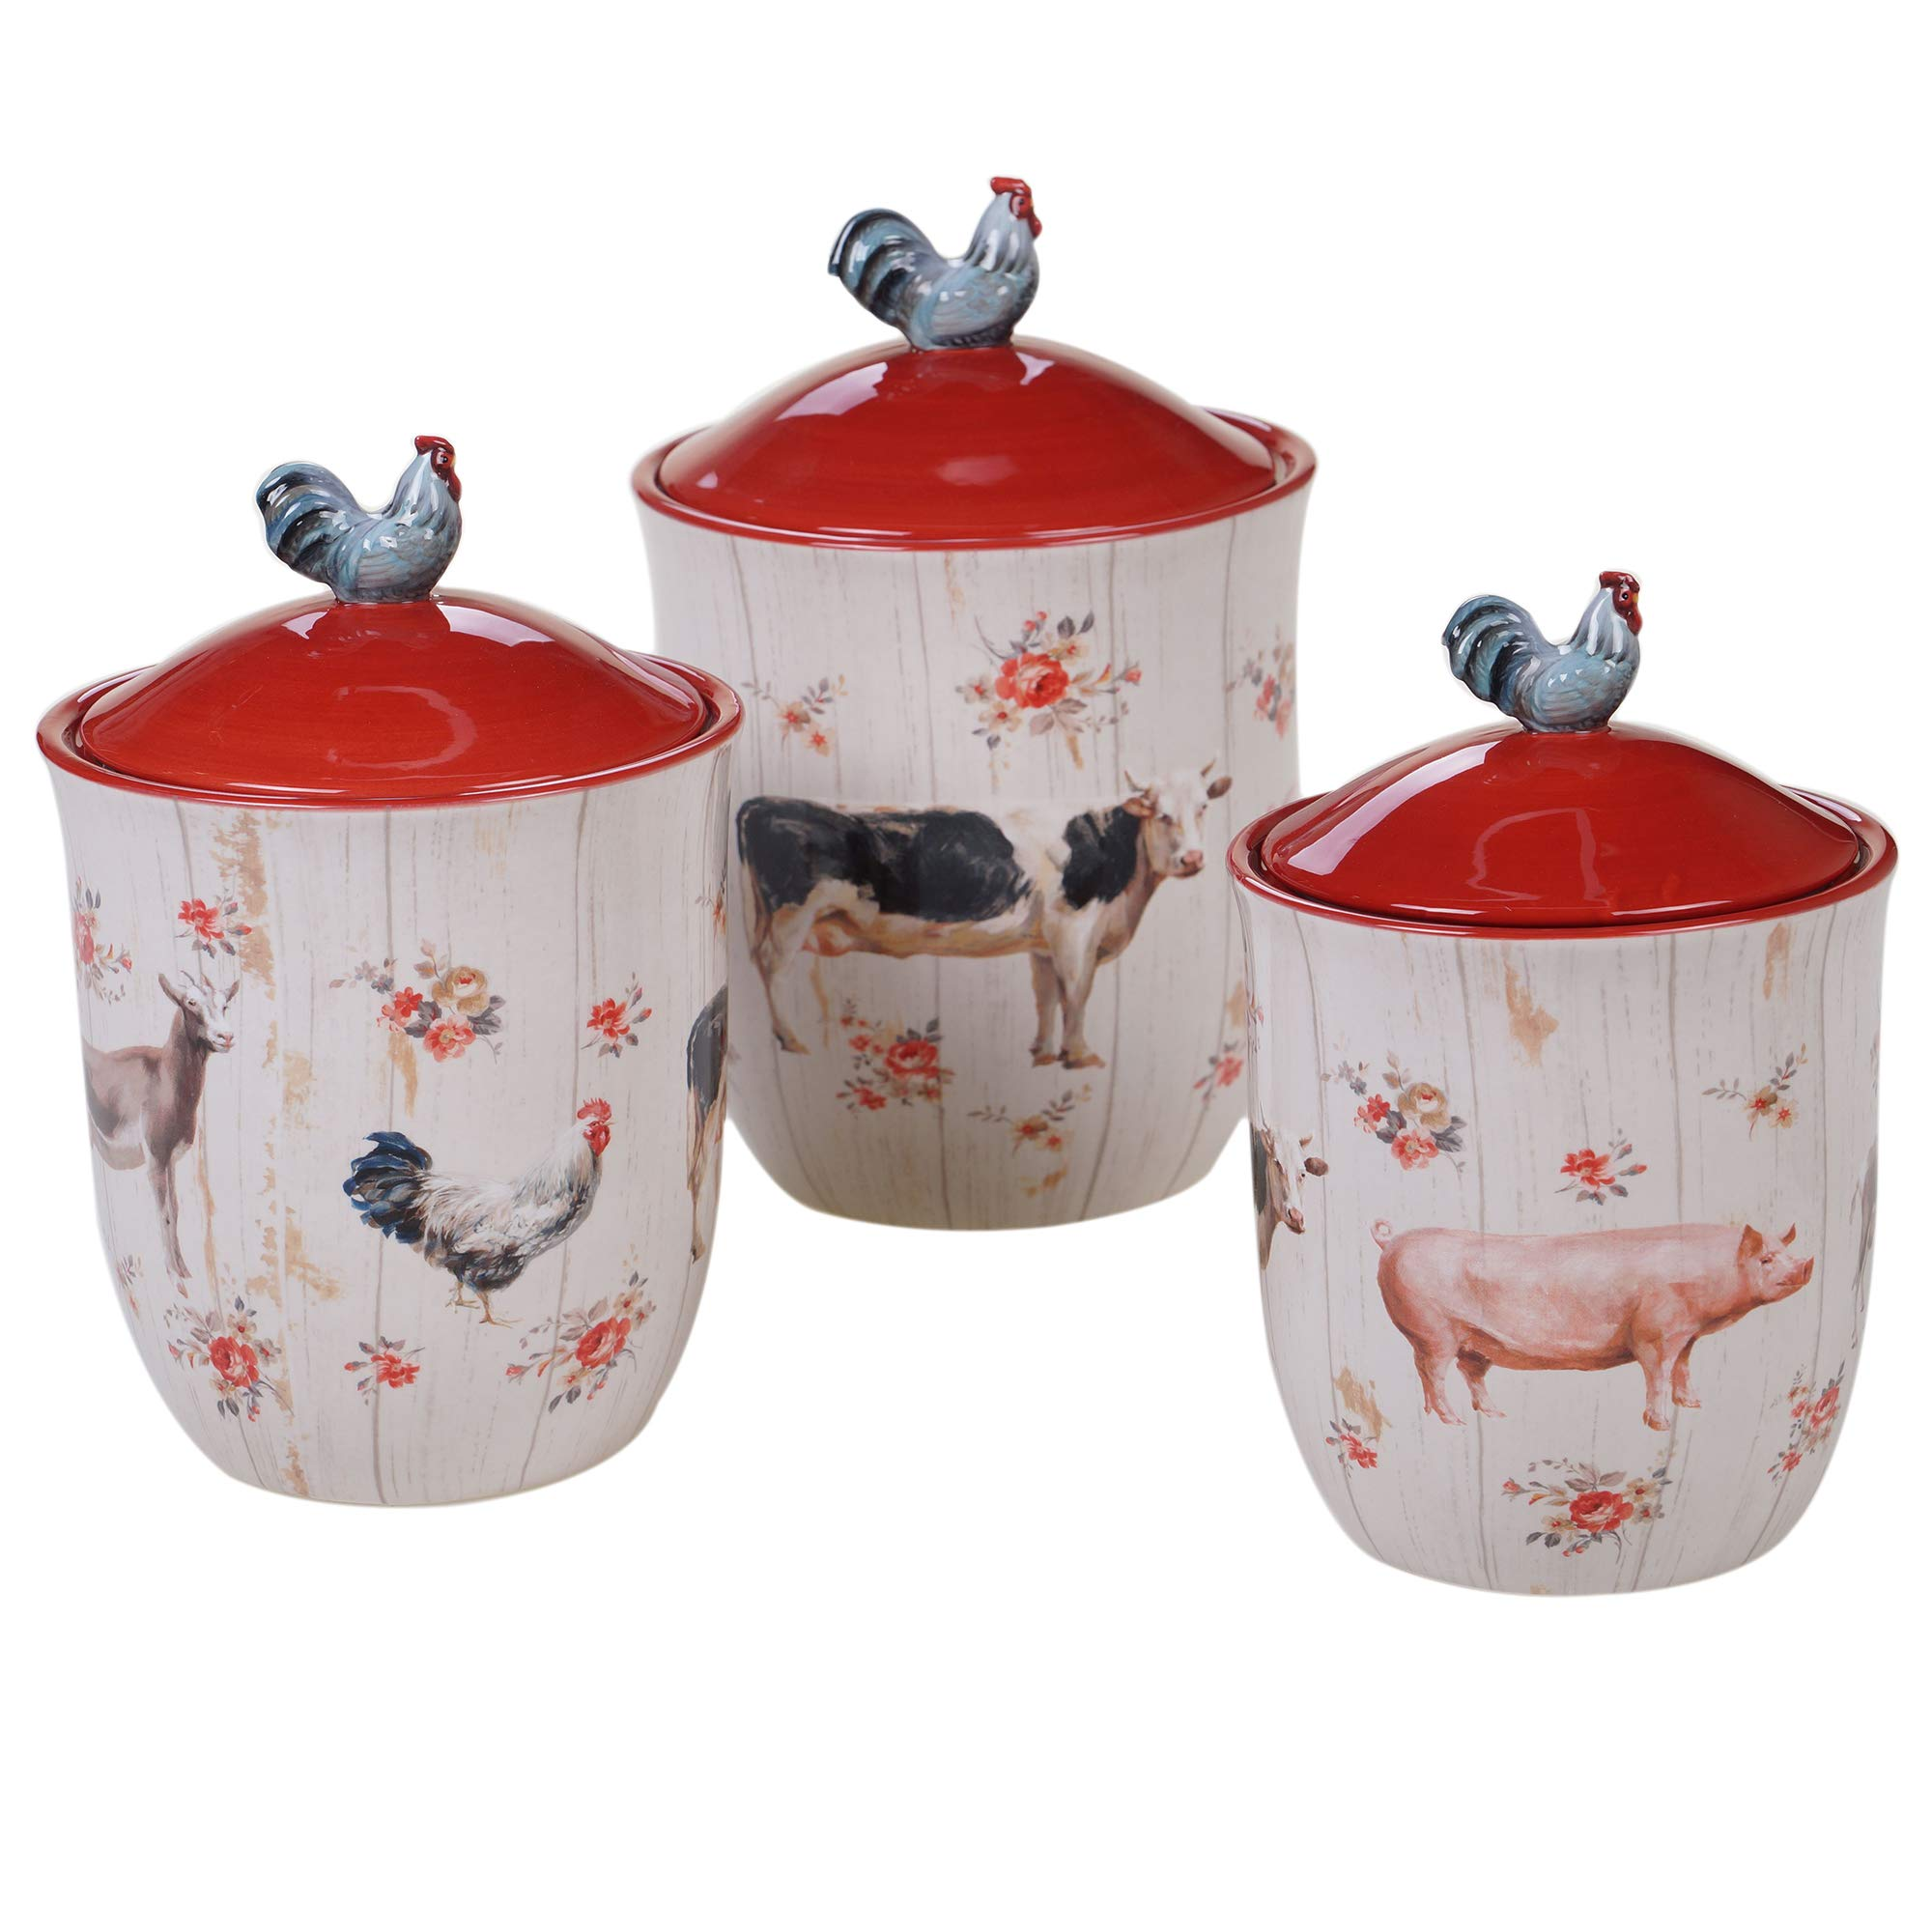 Certified International 26736 Farmhouse 3 pc. Canister Set Servware, Serving Acessories, Multicolred